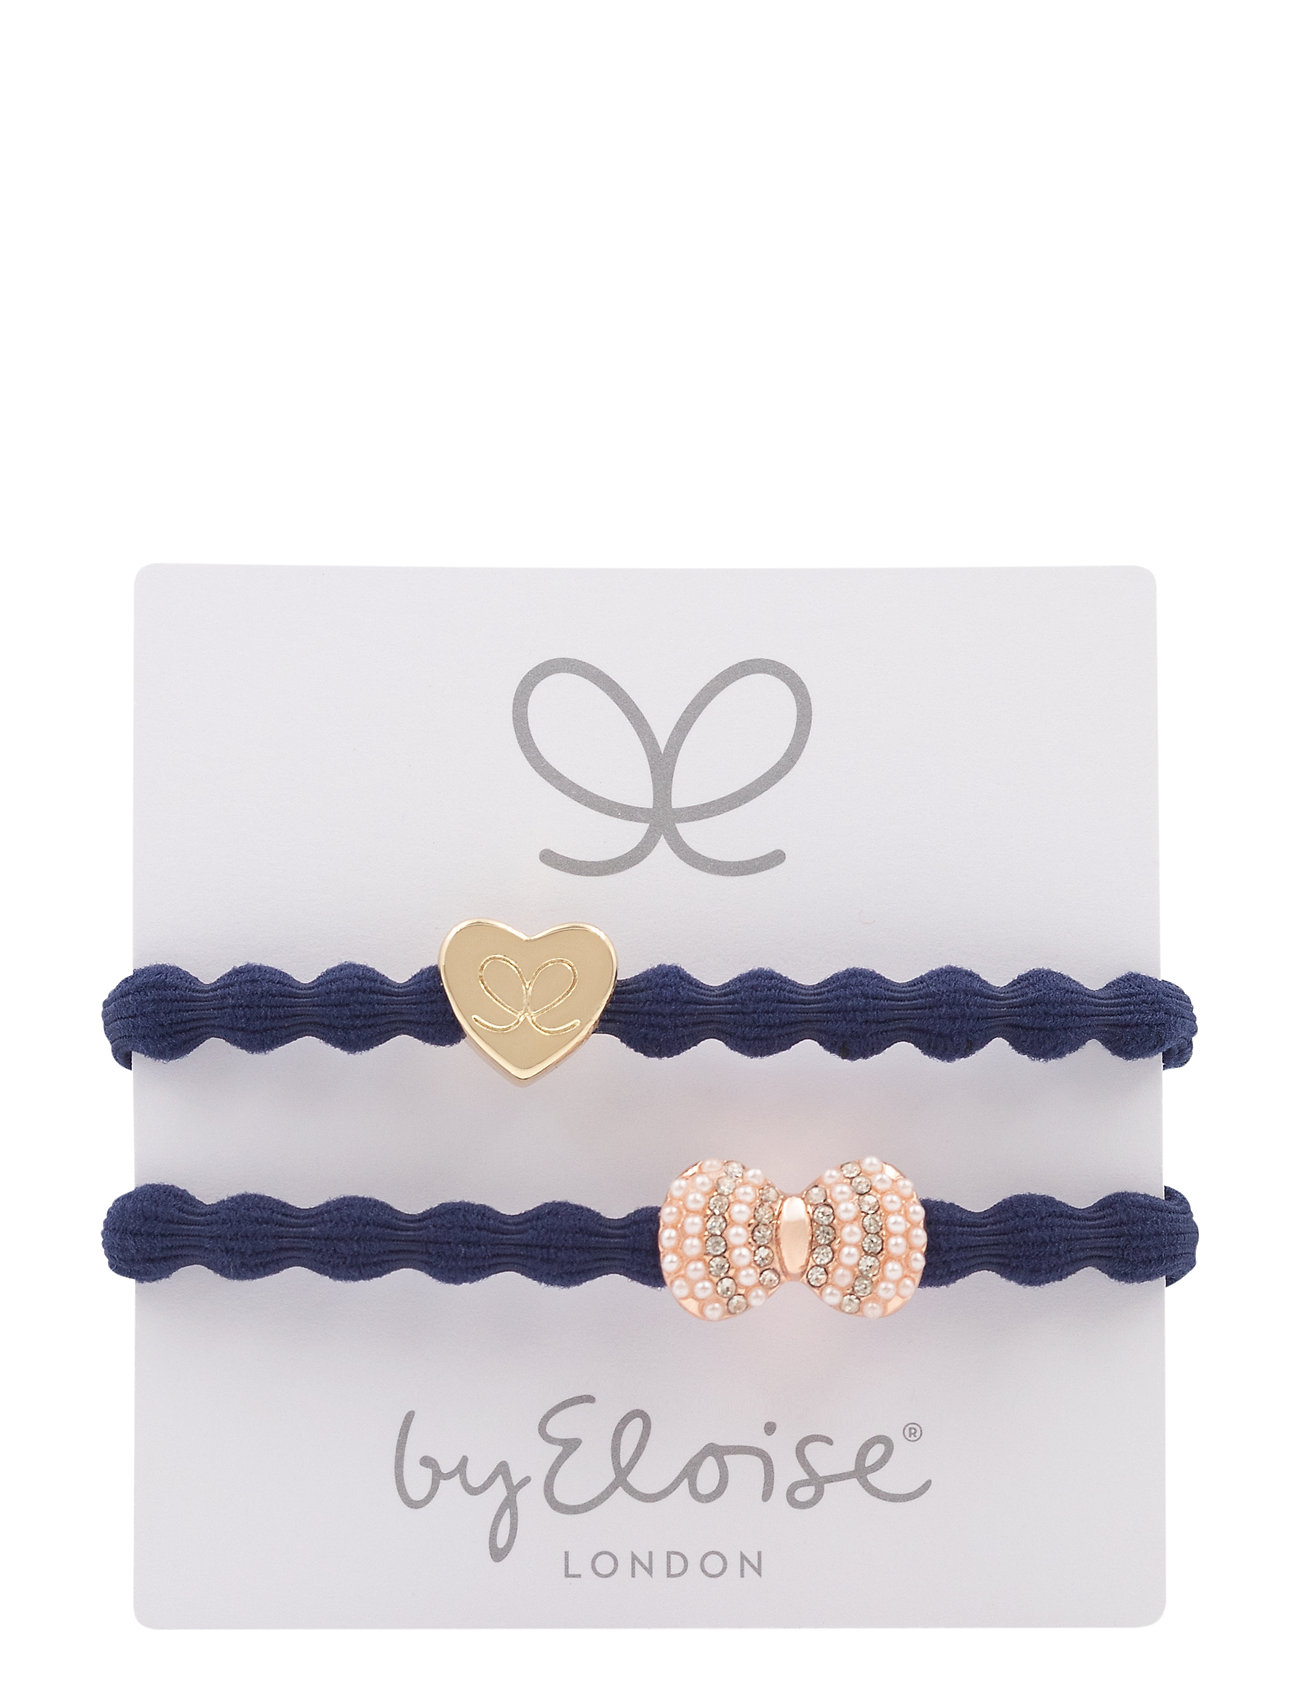 Gold Heart On Navy And Bling Bow On Navy - ByEloise